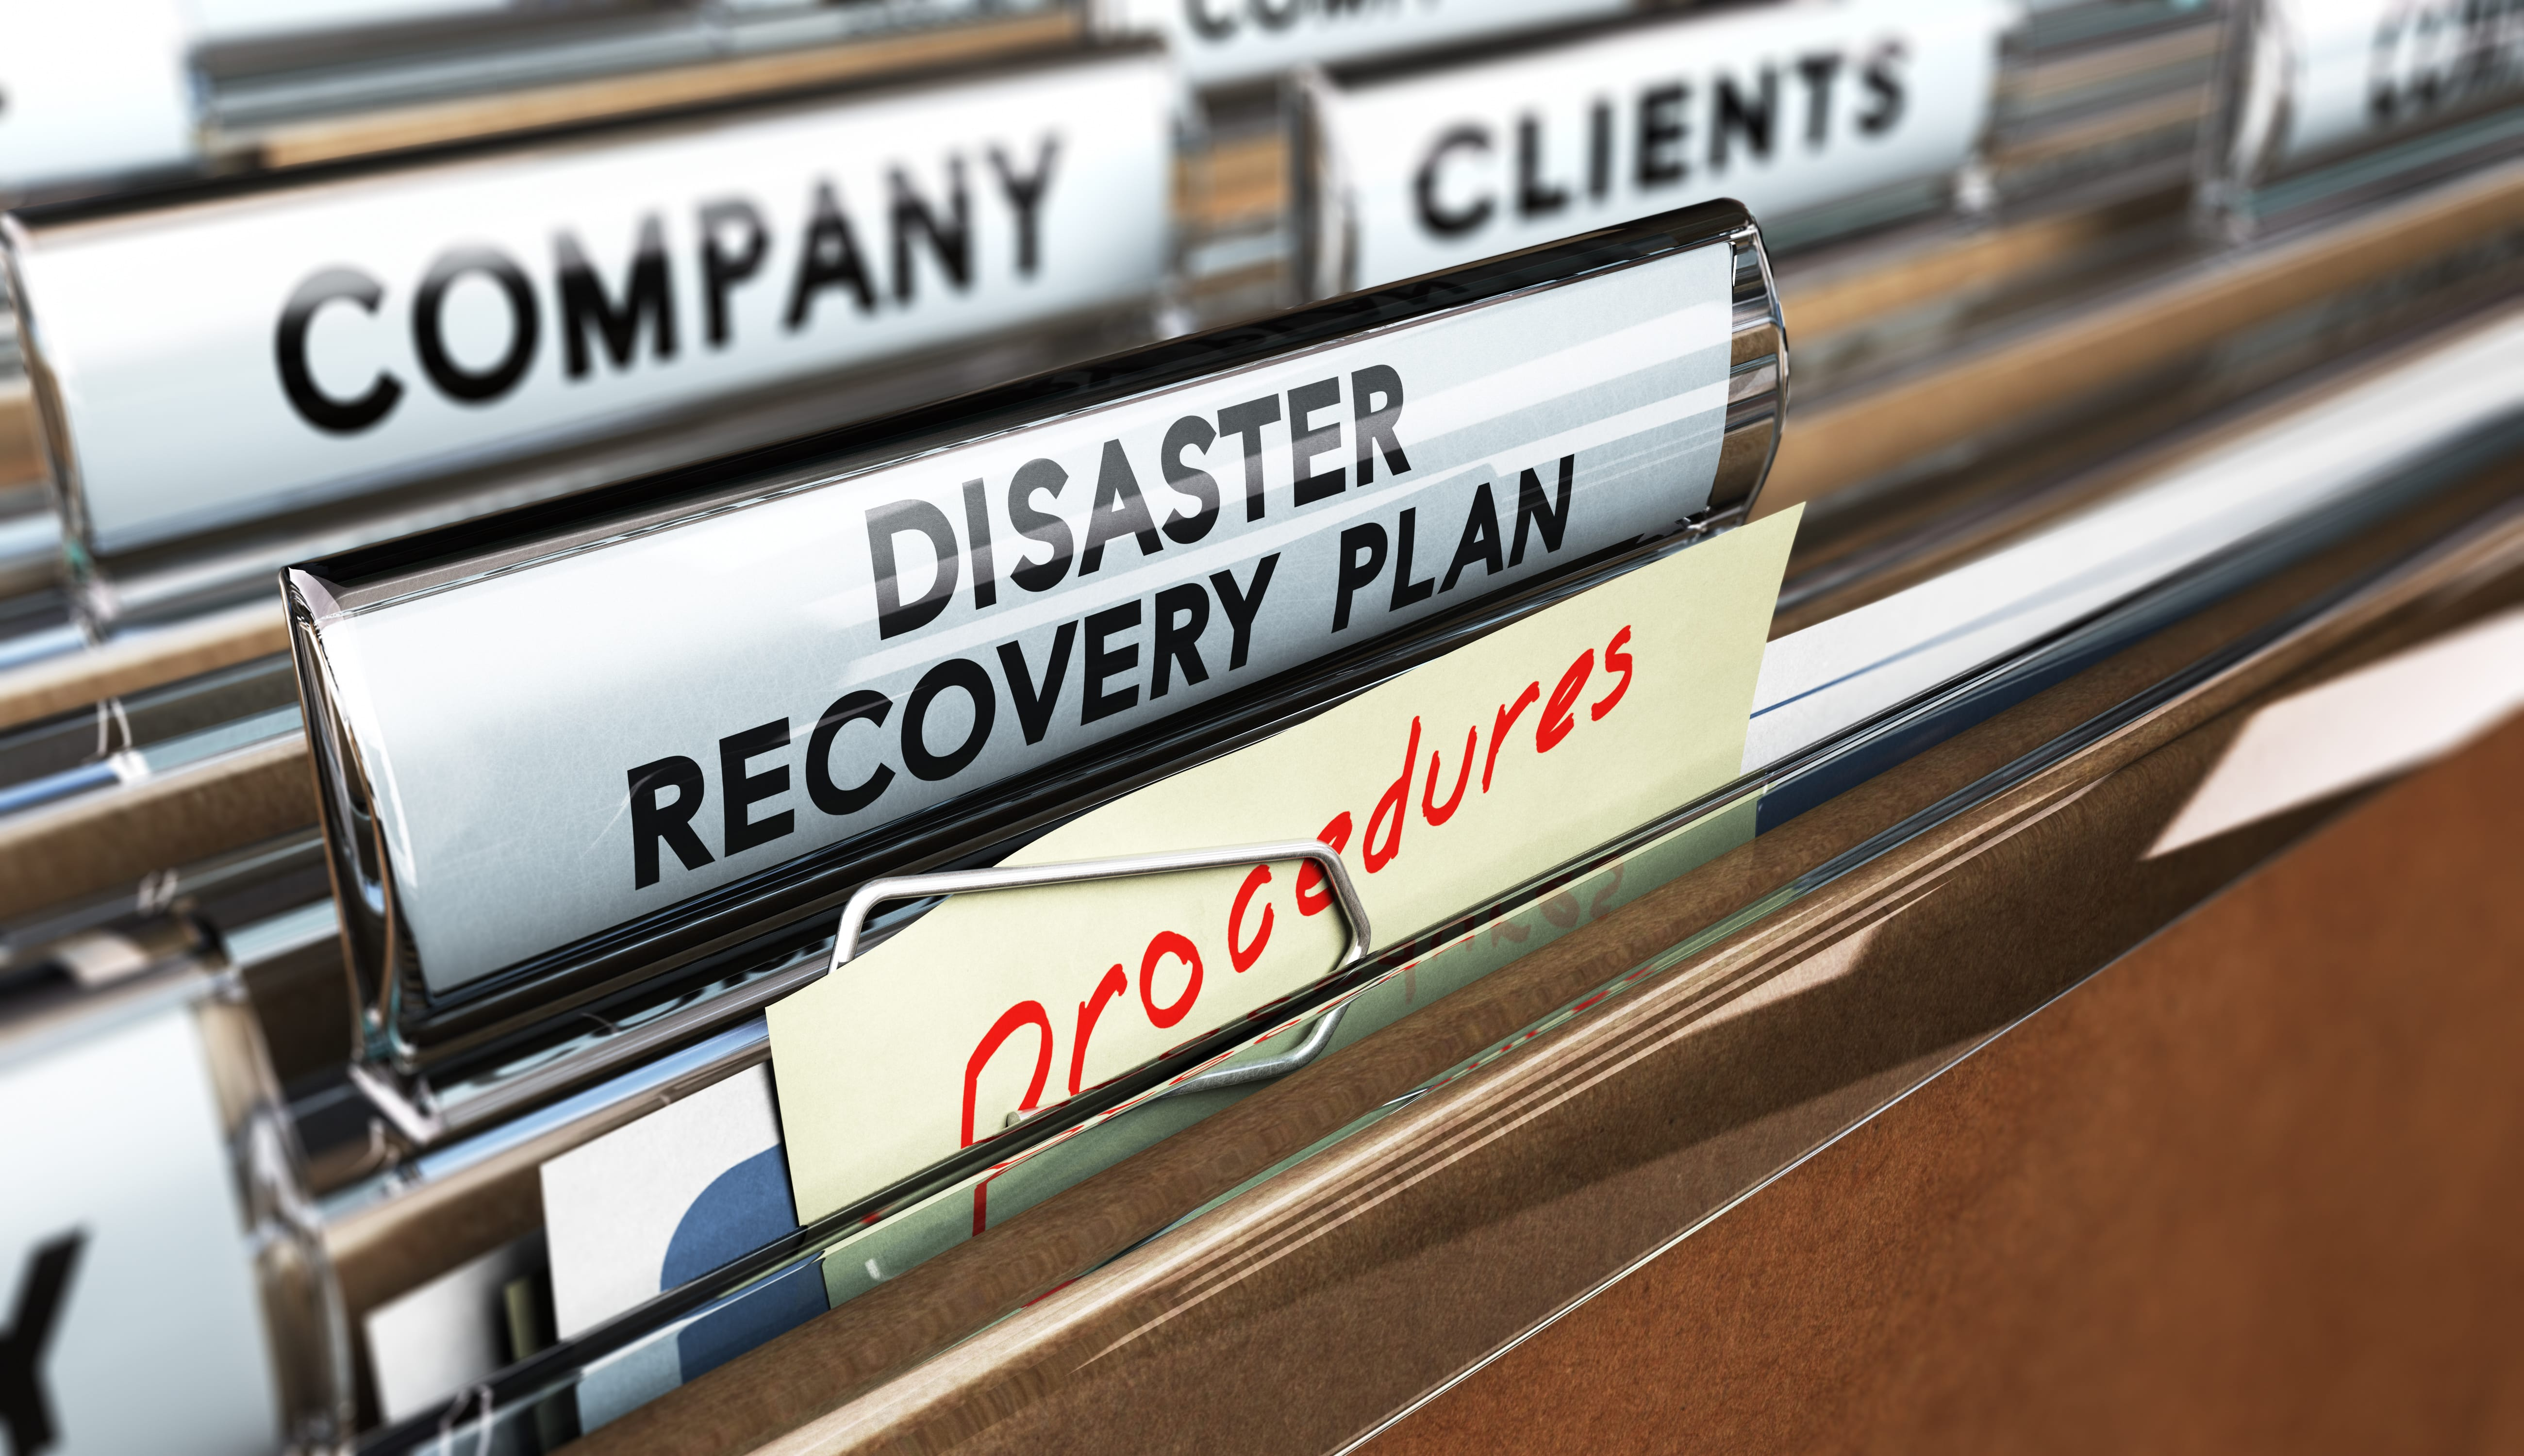 5-Point Checklist for Small Business Disaster and Document Recovery Planning - Featured Image